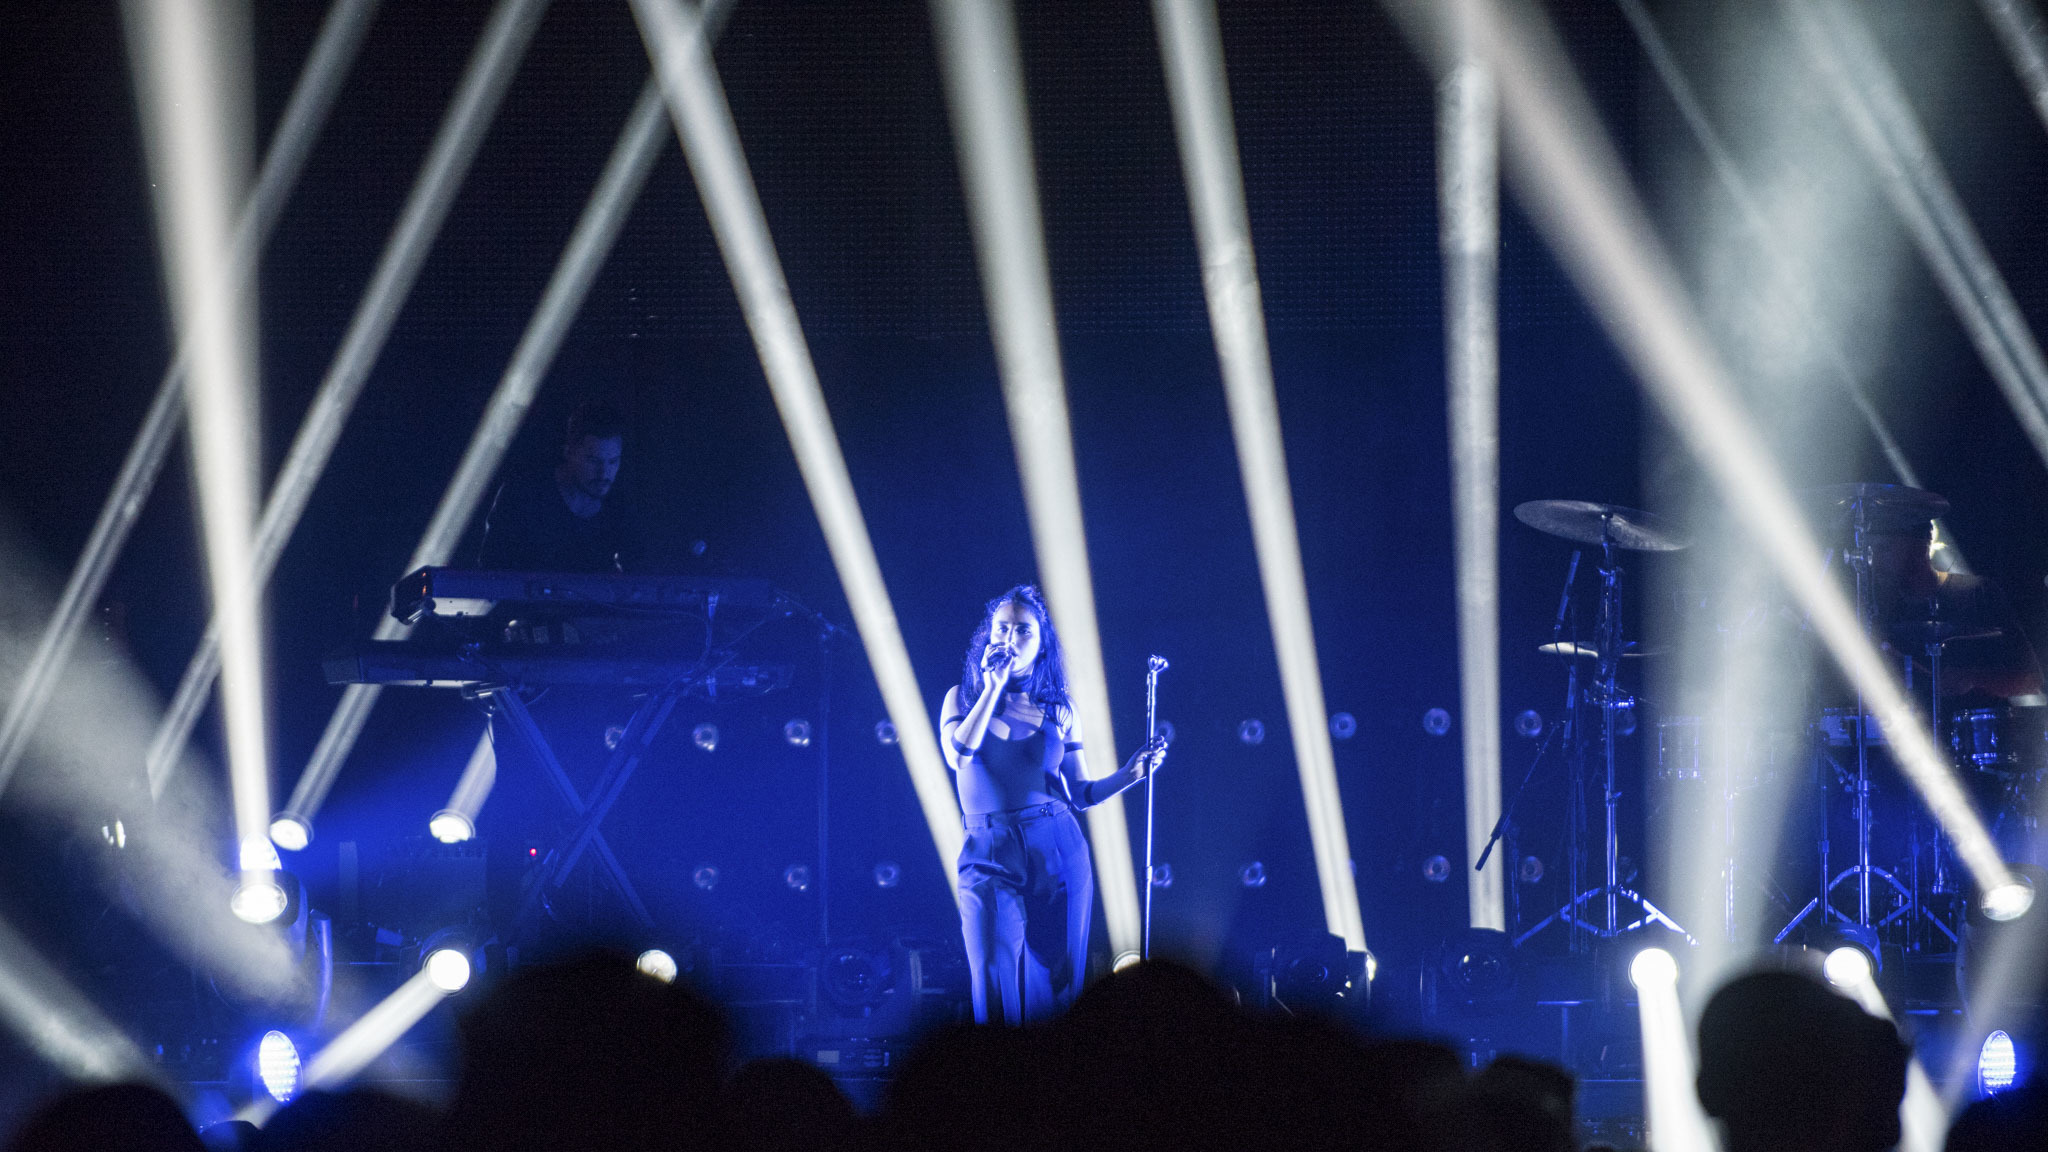 Banks opened for The Weeknd at the United Center on November 6, 2015.